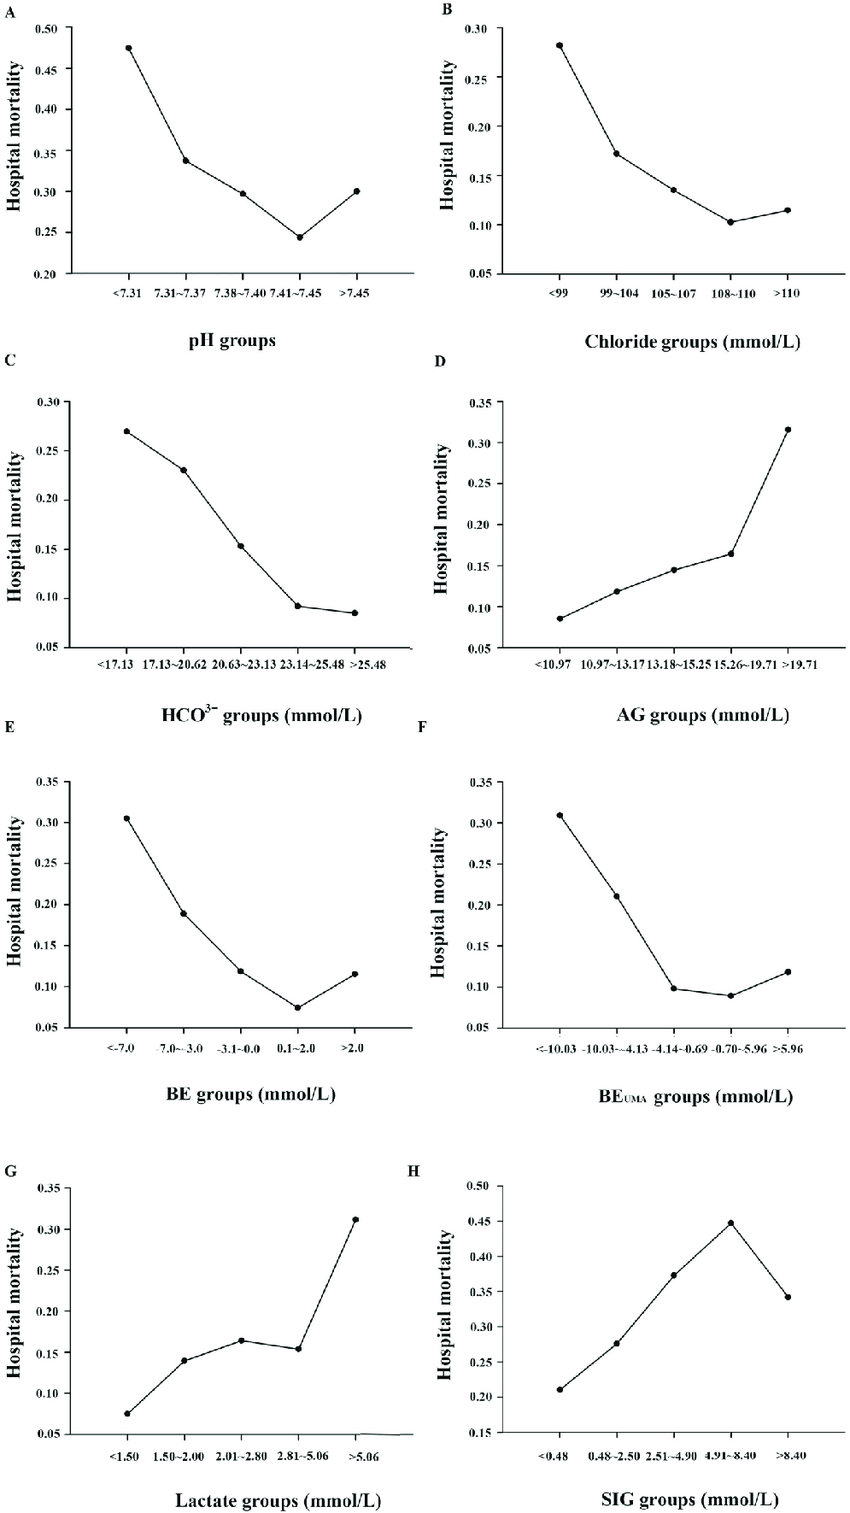 hight resolution of the 30 day hospital mortality of the associated acid base marker in different intervals